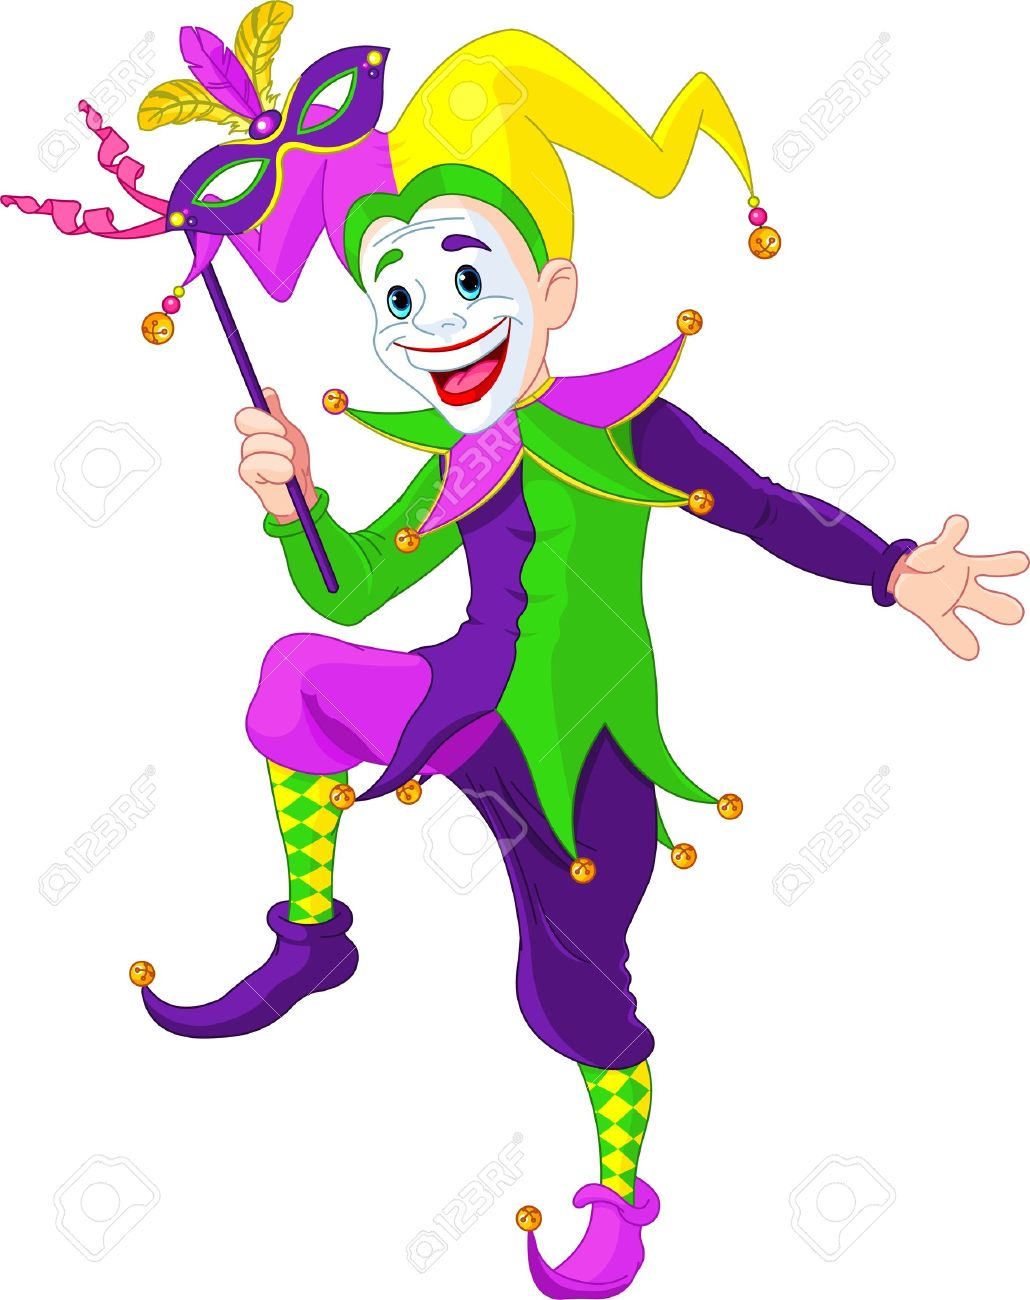 Clip art illustration of a cartoon Mardi Gras jester holding...